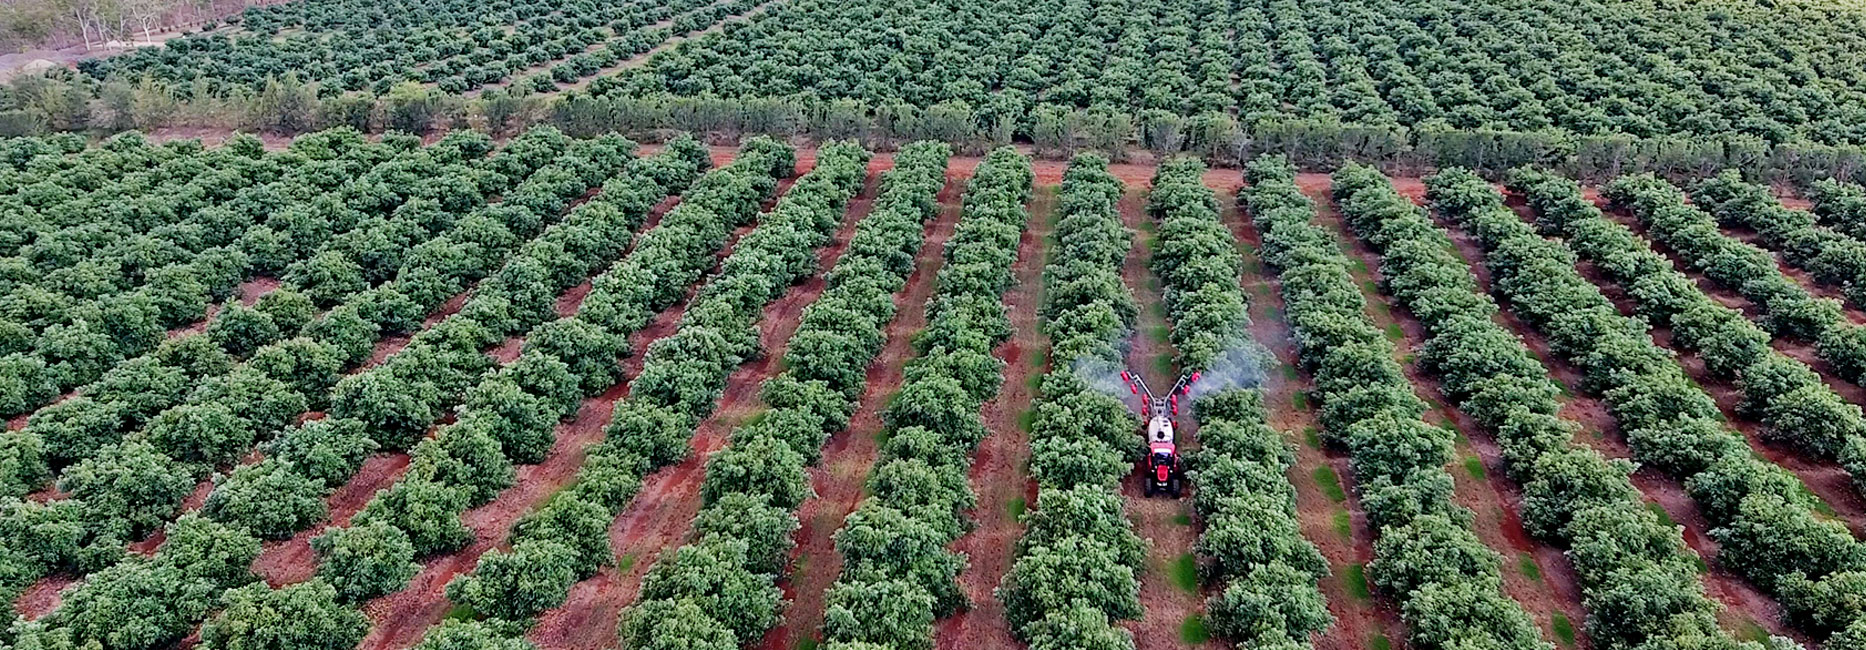 Spray Diary Schedule Agriculture Horticulture Farm Spray Schedule Drone Imagery Farm app Manage Farm Farm Spray Schedule and Diary spray Diary